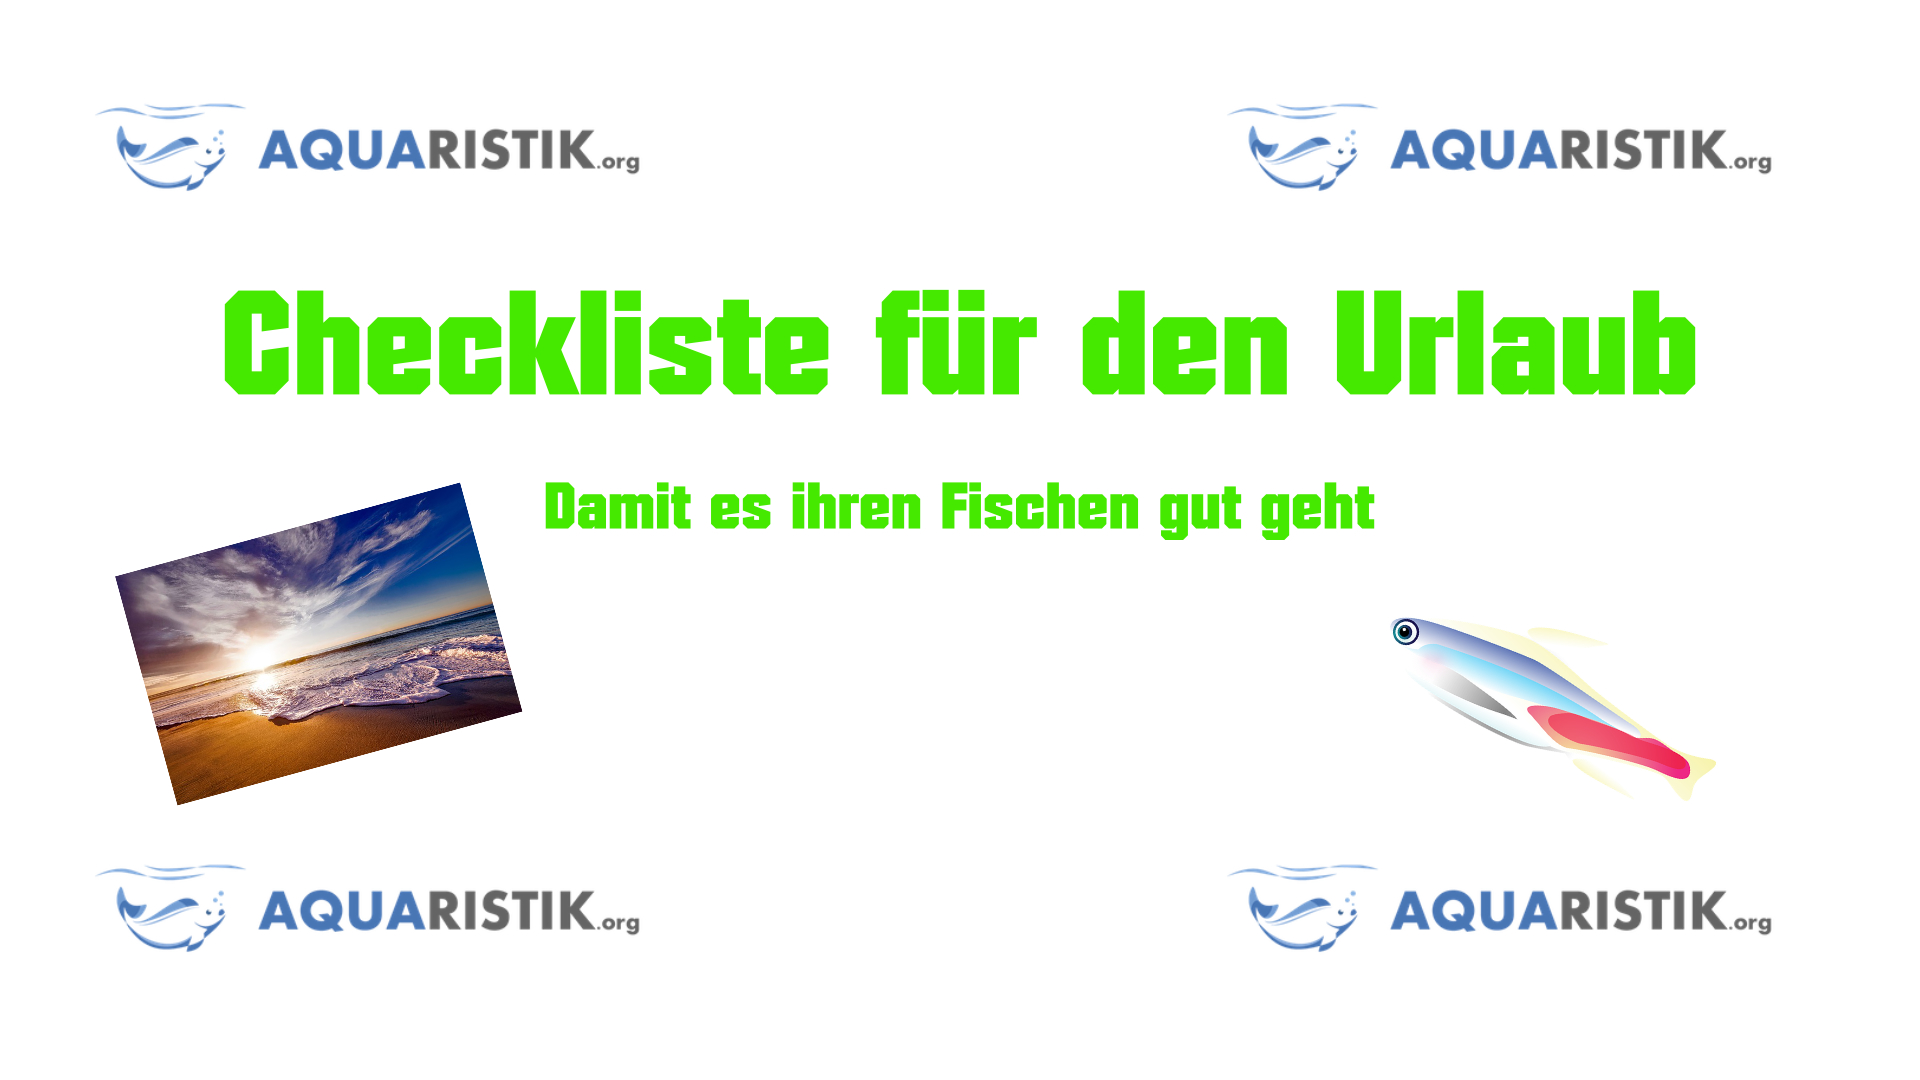 aquarium im urlaub checkliste zur bergabe und pflege aquaristik. Black Bedroom Furniture Sets. Home Design Ideas